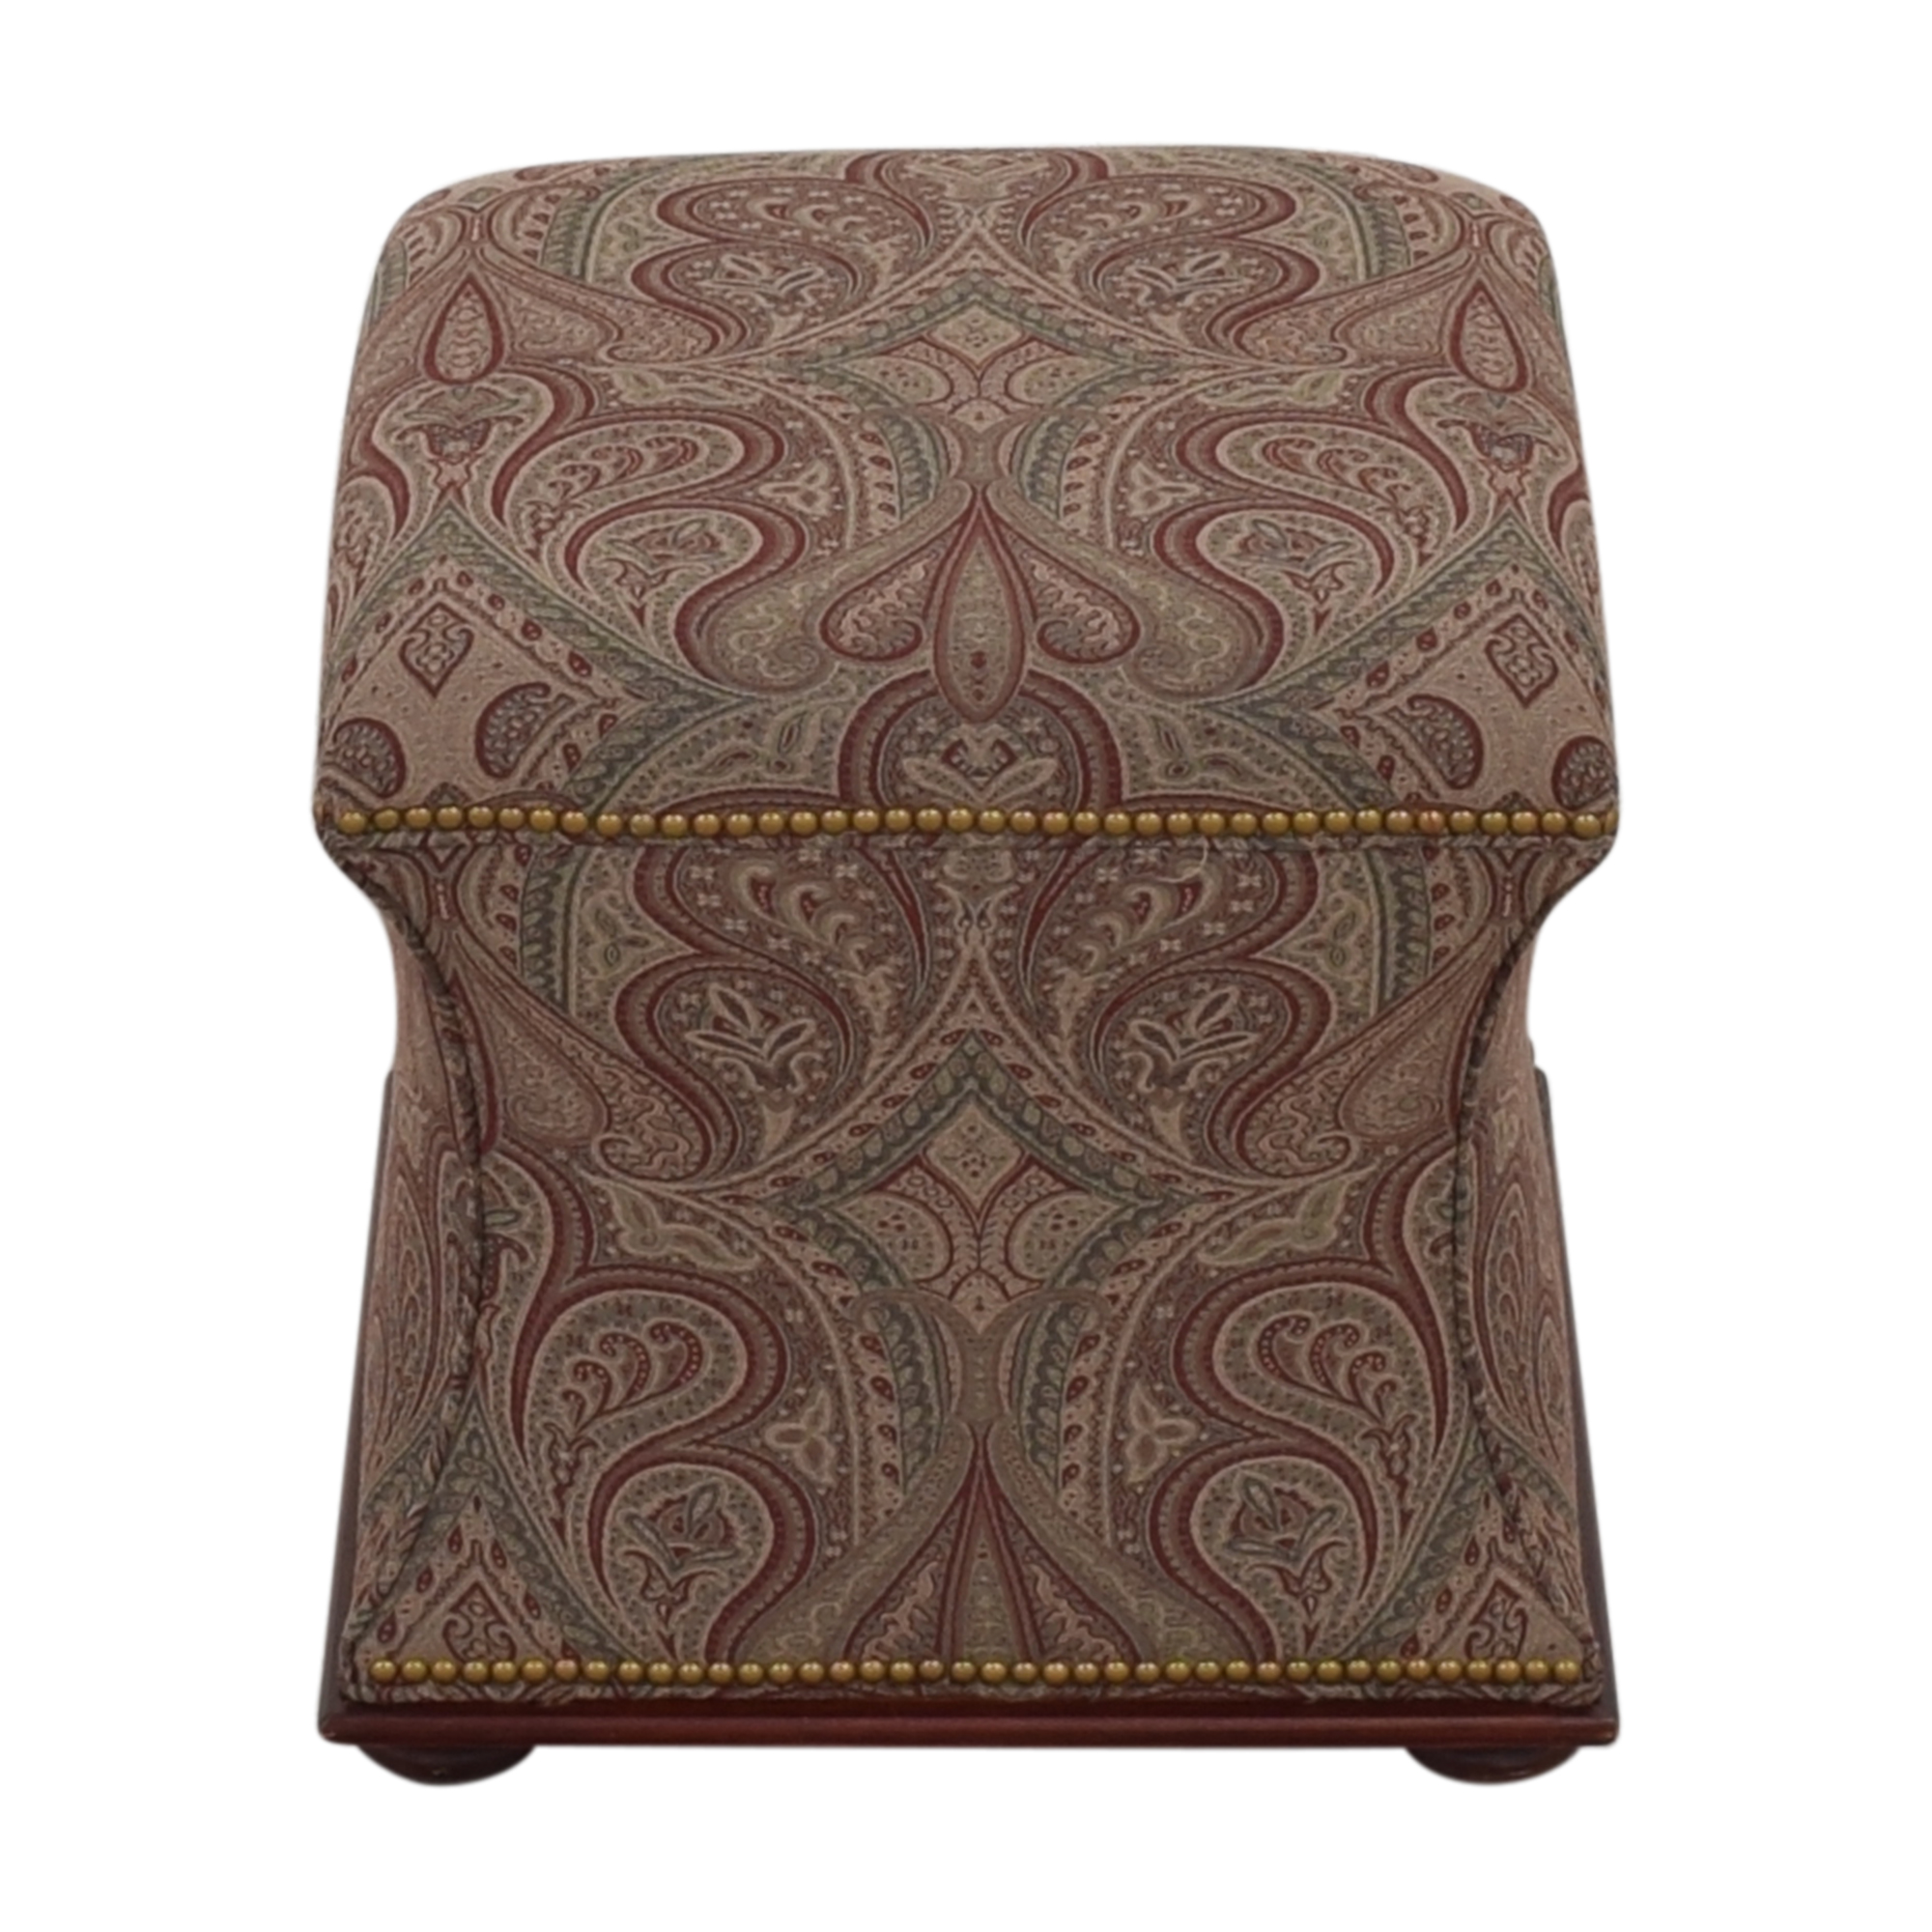 Hickory Chair Hickory Chair Ottoman Chairs